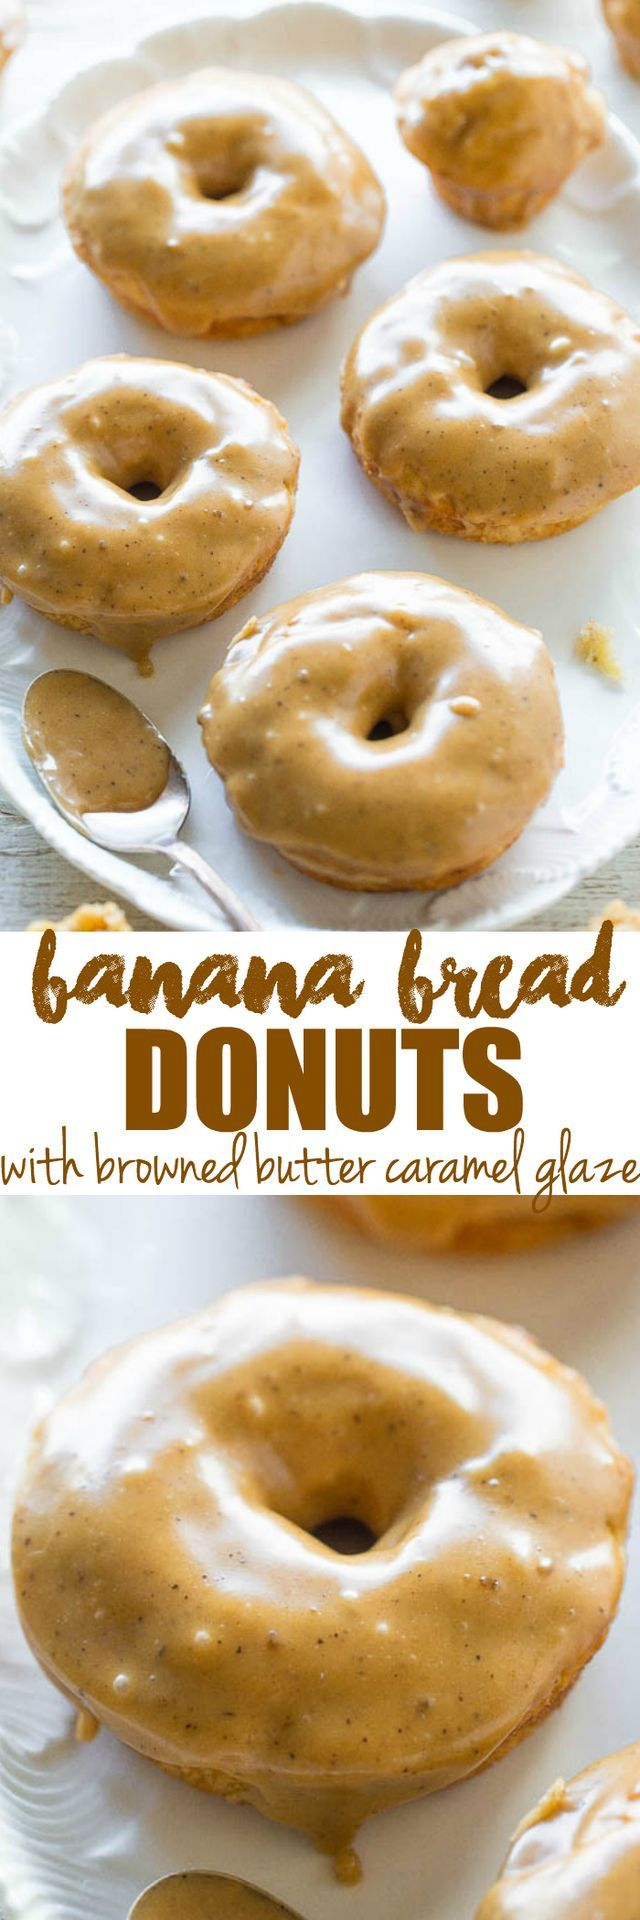 Banana Bread Donuts with Browned Butter Caramel Glaze | Averie Cooks | Bloglovin'